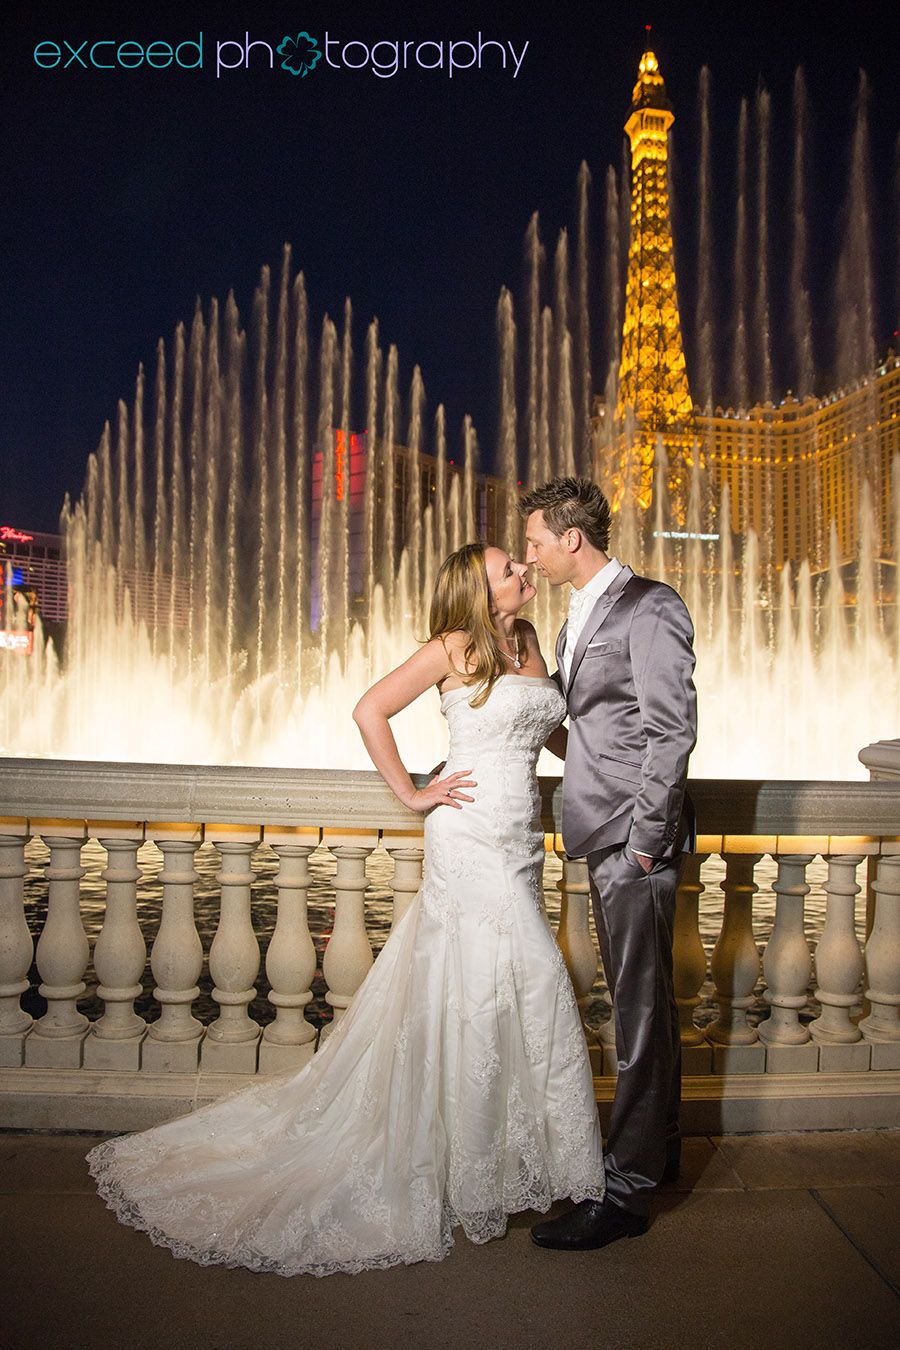 Las Vegas Wedding Strip Photo Tour- Exceed Photography